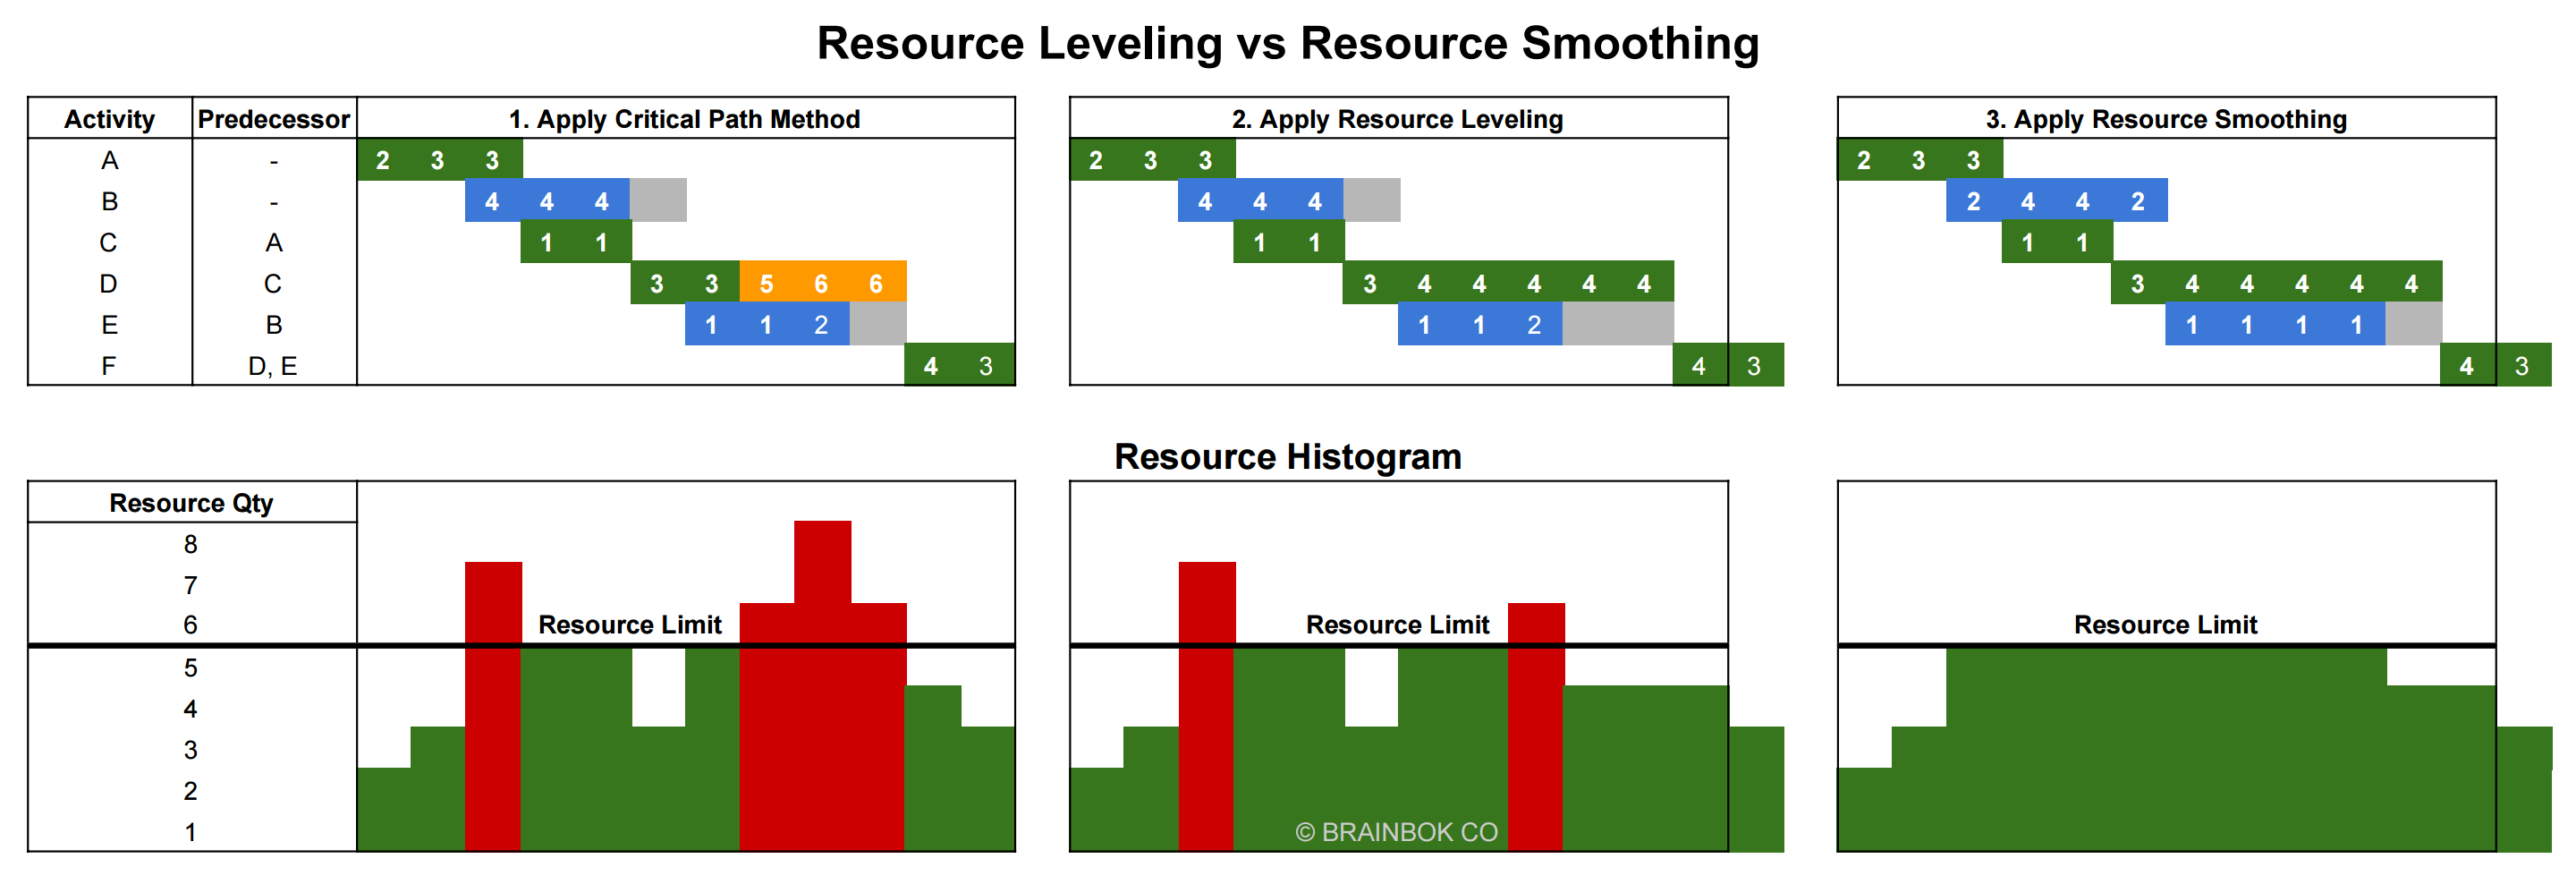 Resource Leveling vs Resource Smoothing Gantt Chart in Project Management